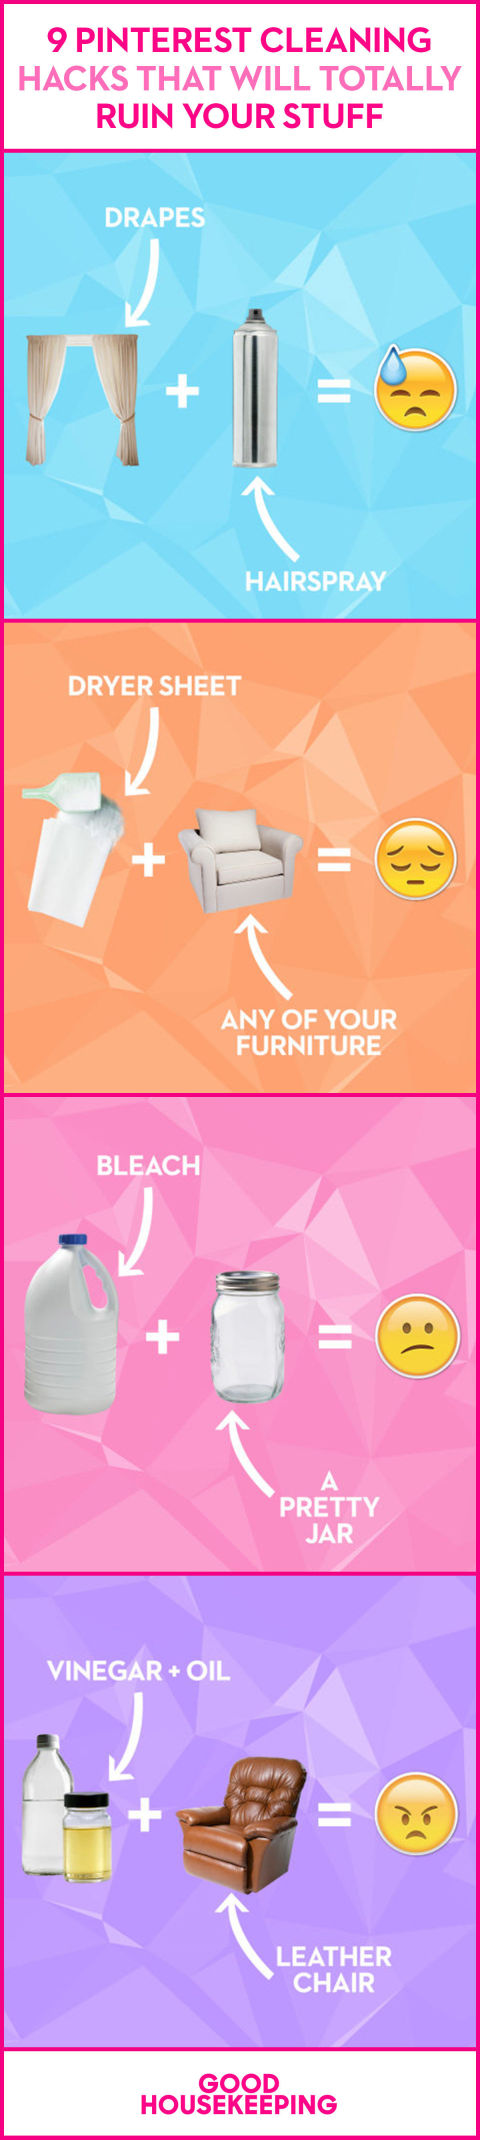 cleaning tricks that ruin your stuff bad cleaning advice 9 cleaning hacks that will totally ruin your stuff